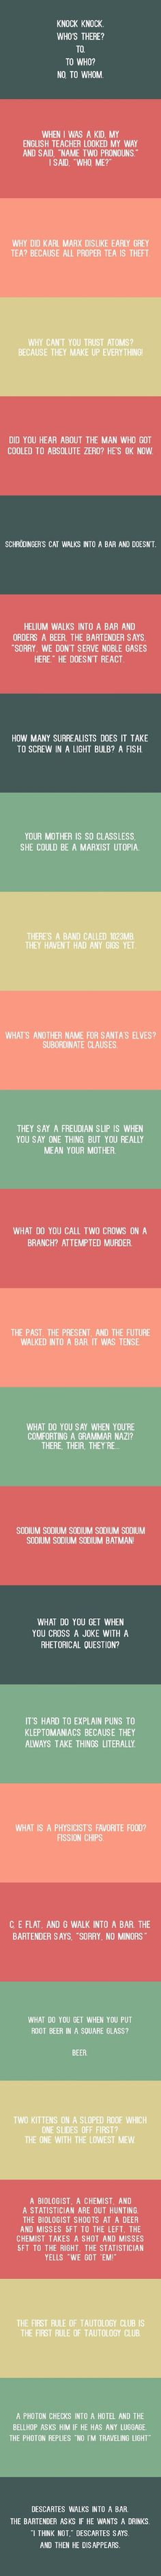 Clever and nerdy jokes